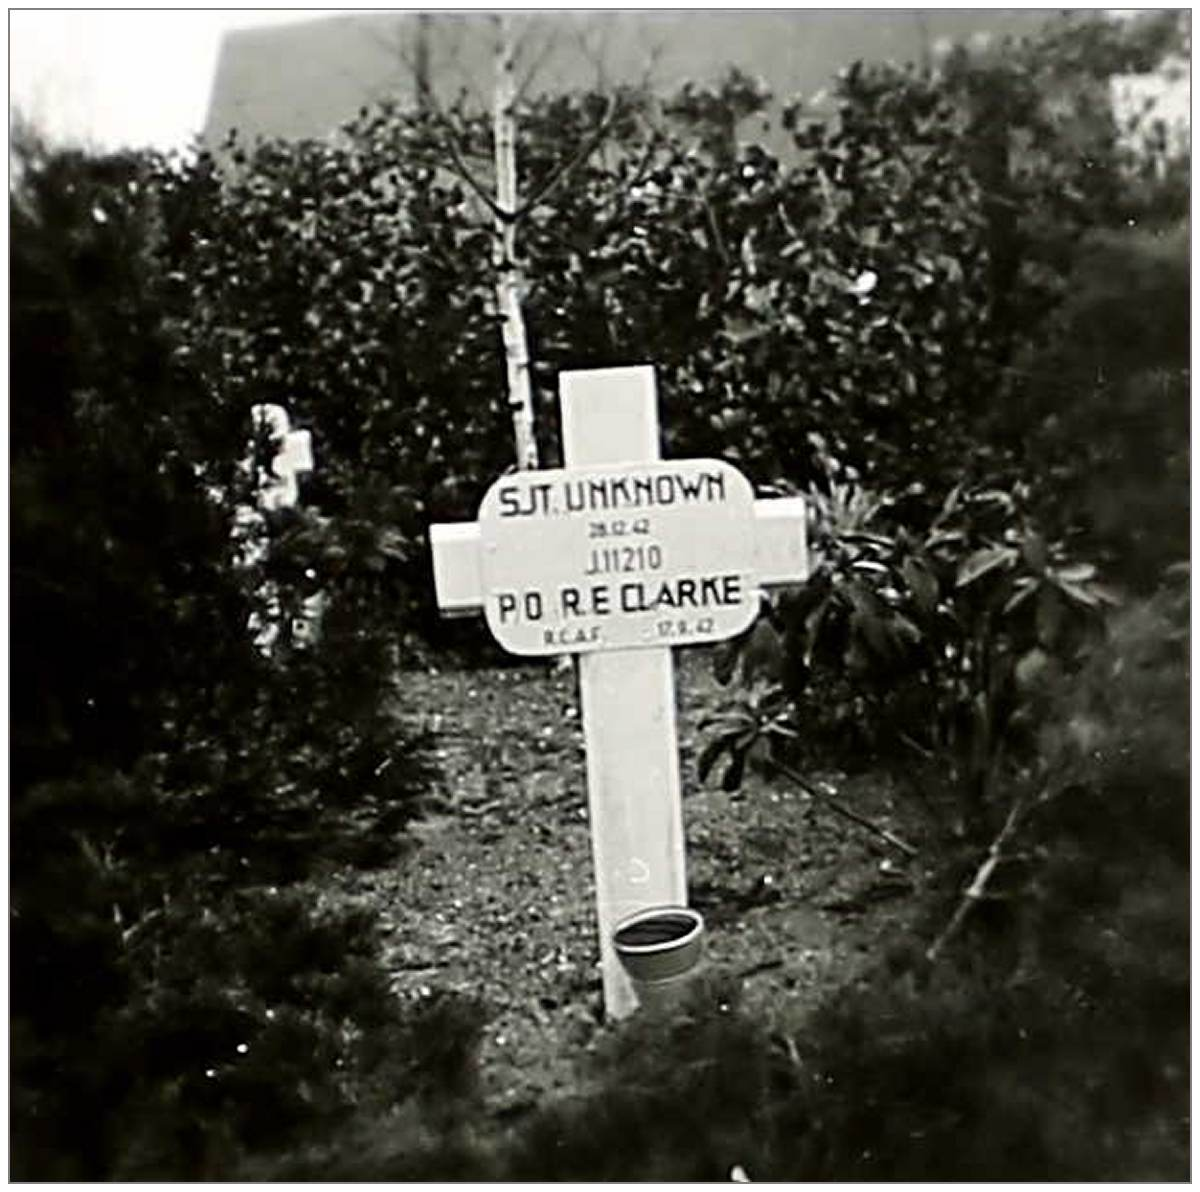 Gravemarker - Unknown Sgt and P/O. J/11210 - Robert Edward Clark(e) - RCAF